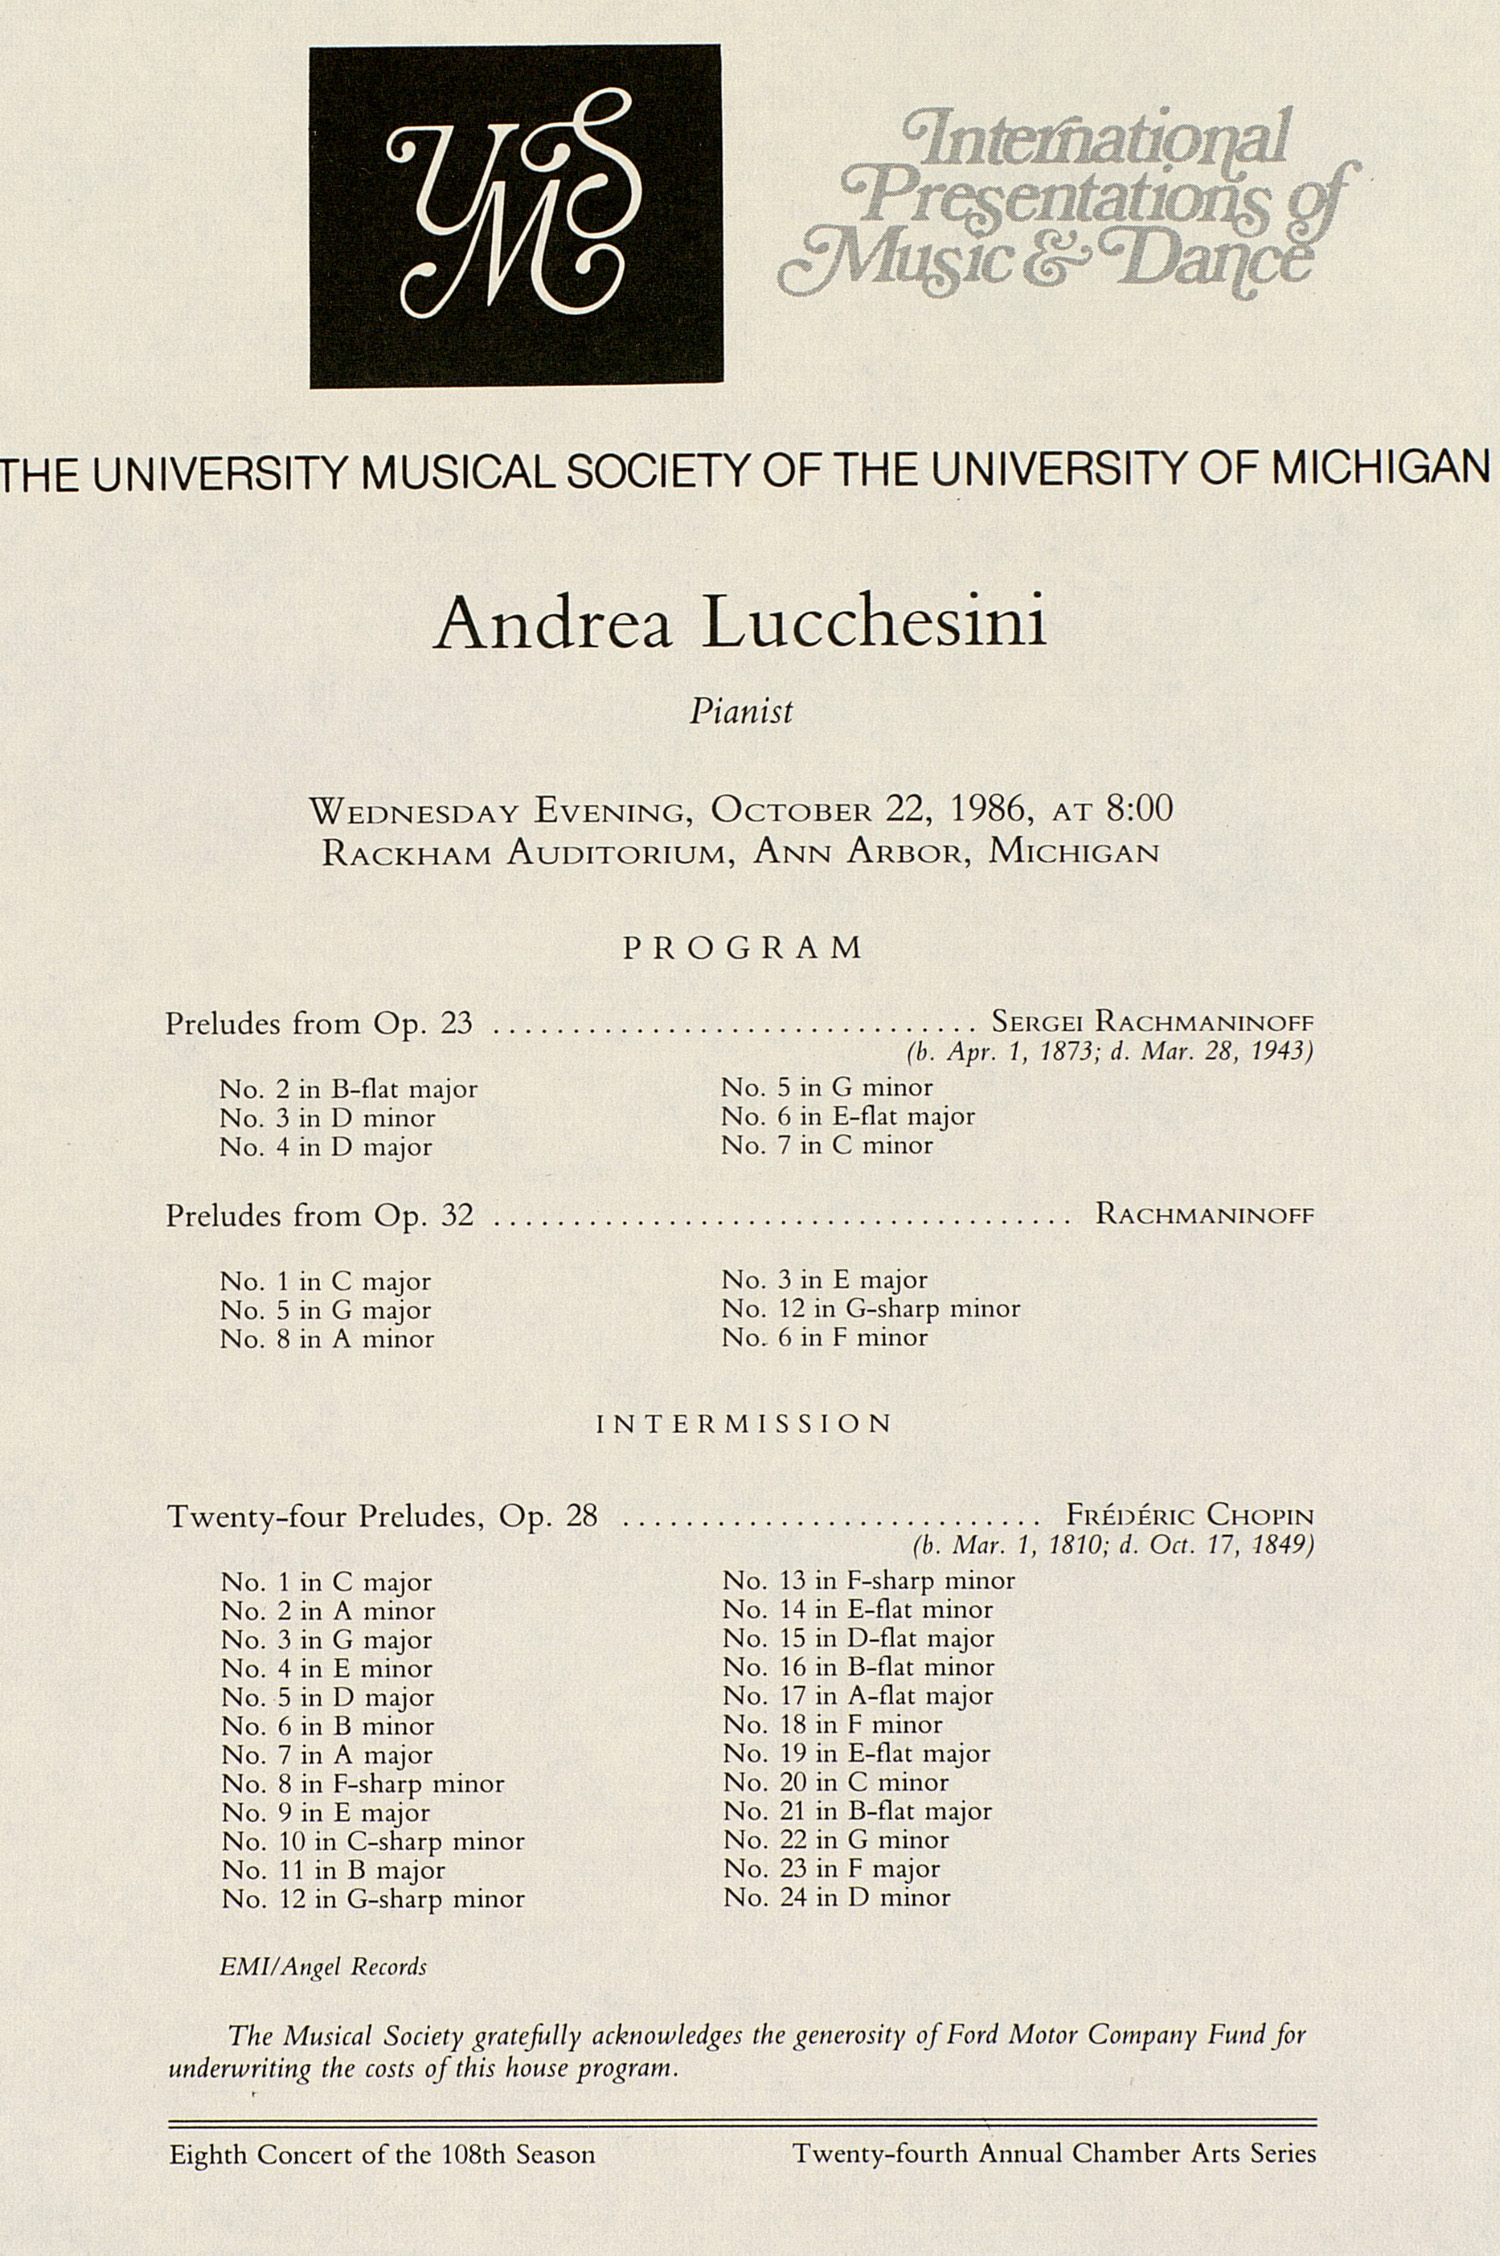 UMS Concert Program, October 22, 1986: International Presentations Of Music & Dance --  image